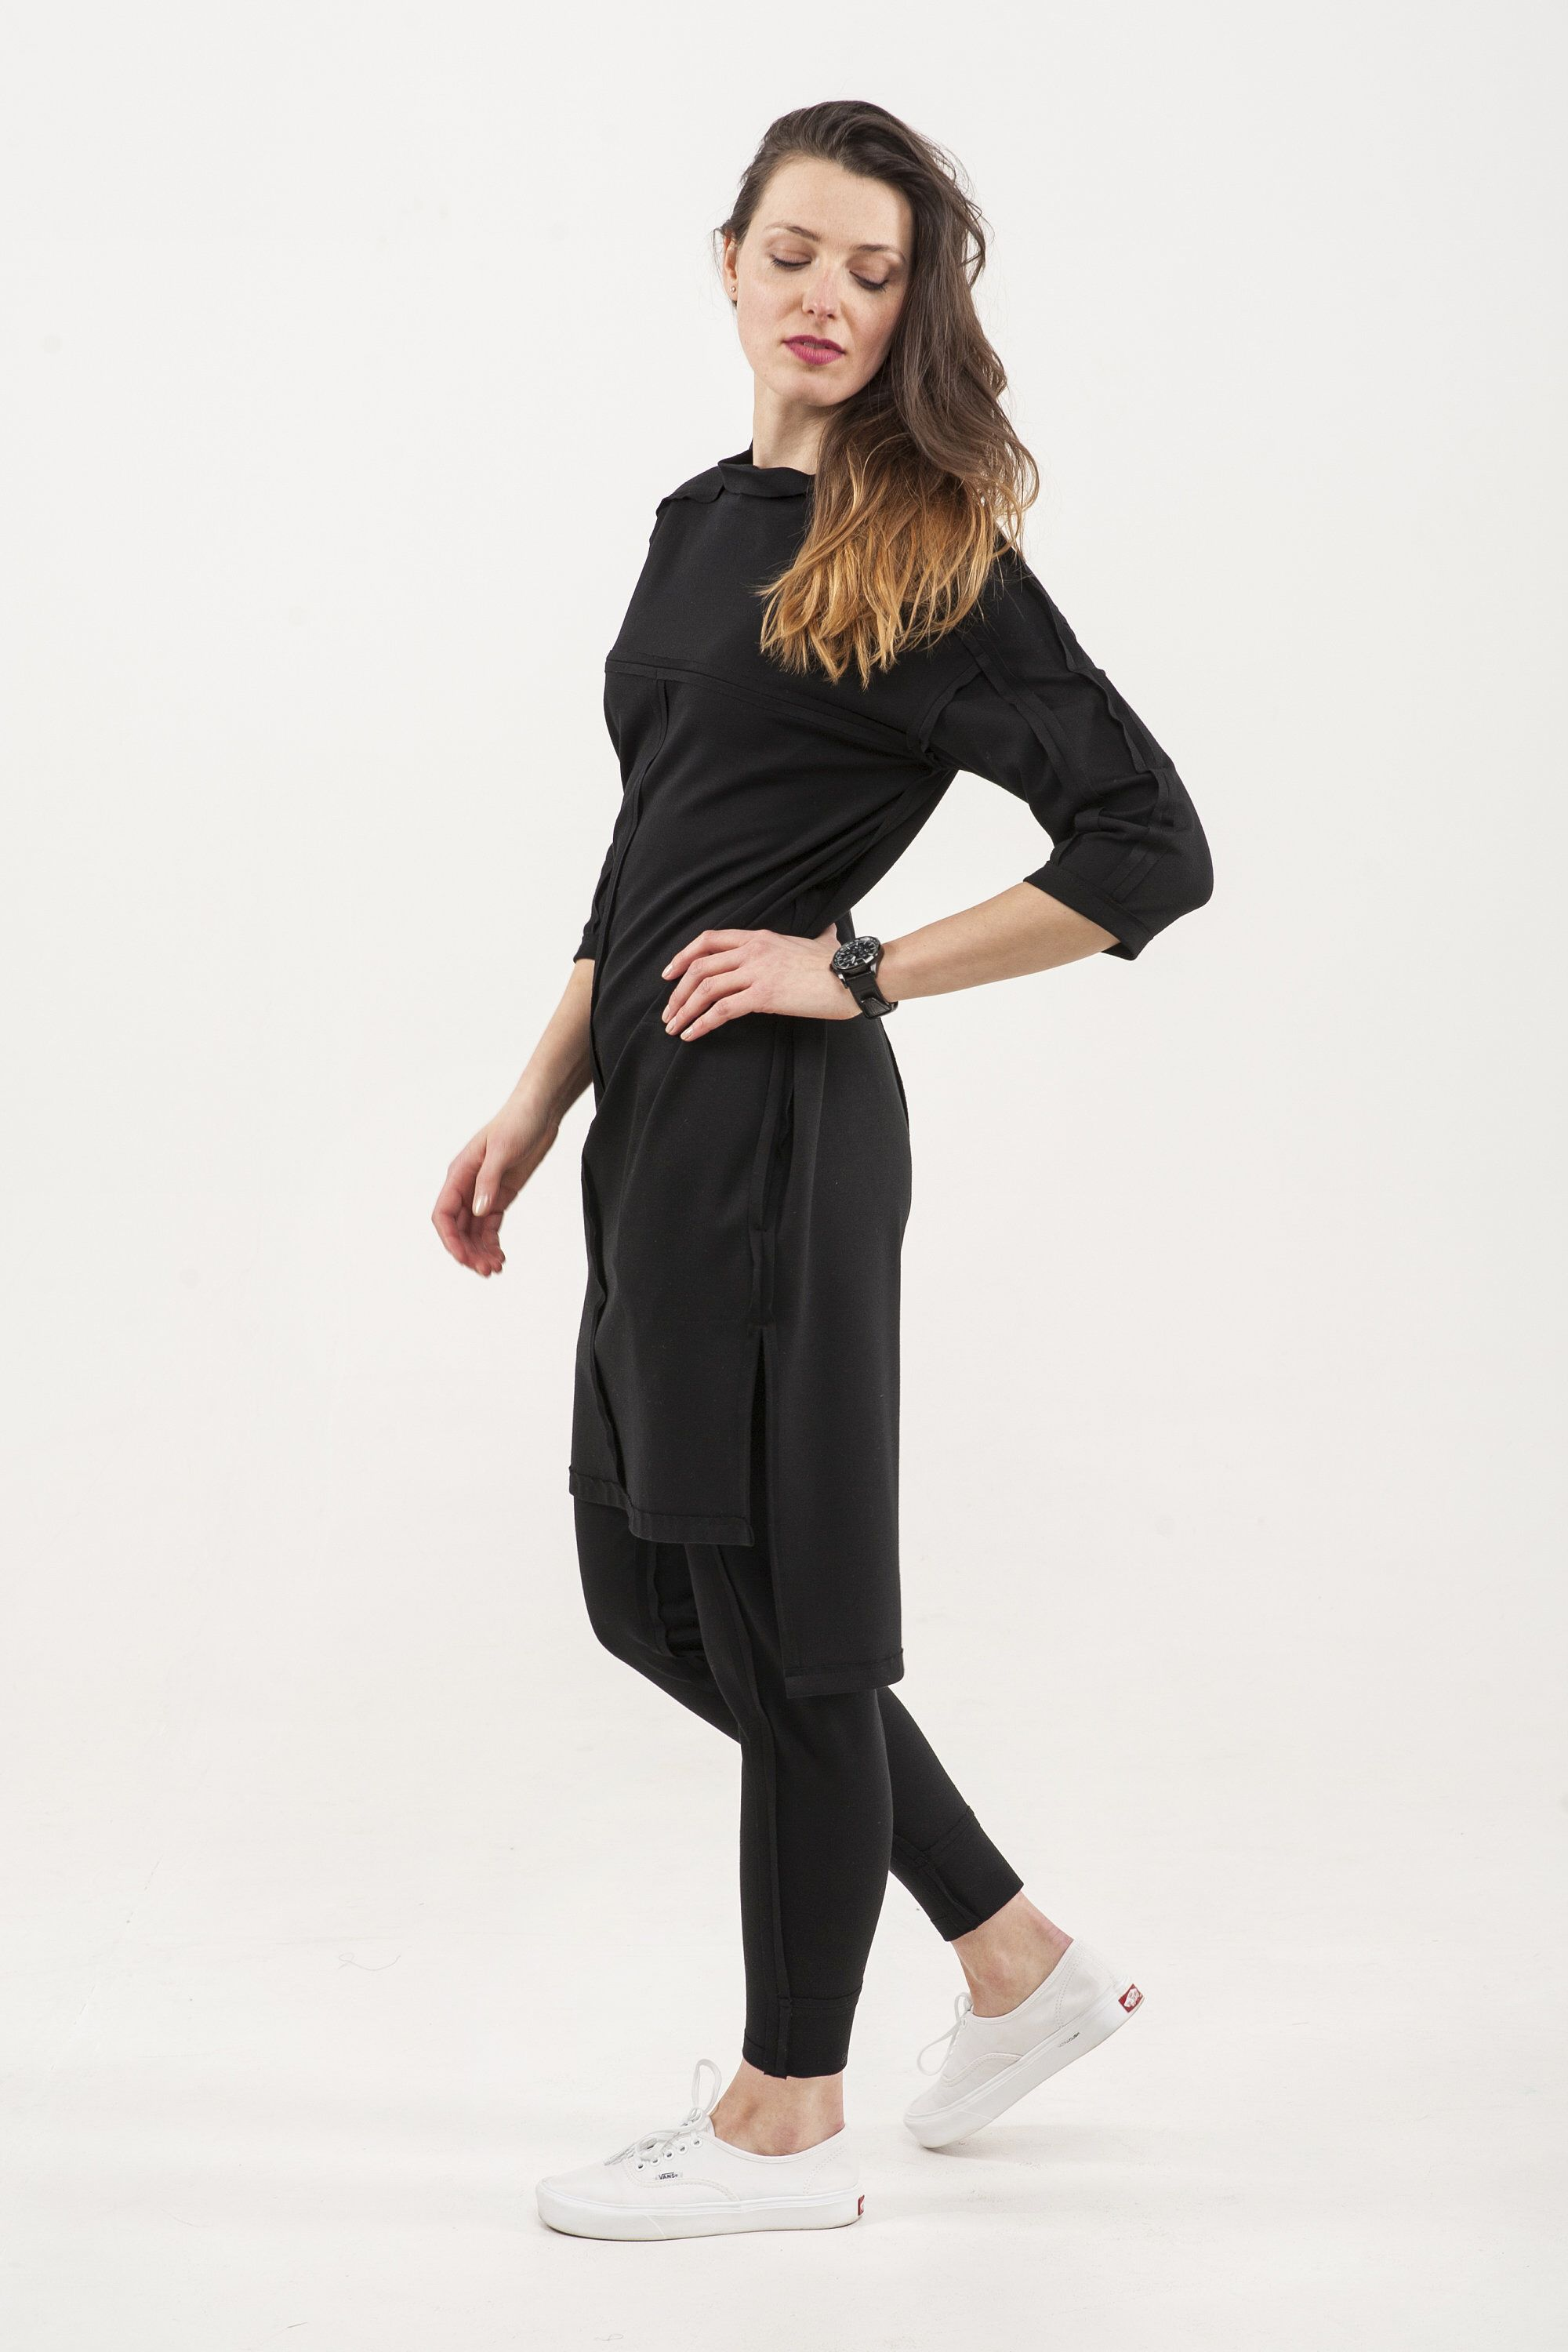 Simple jersey outfit jersey tunic and pants little black dress